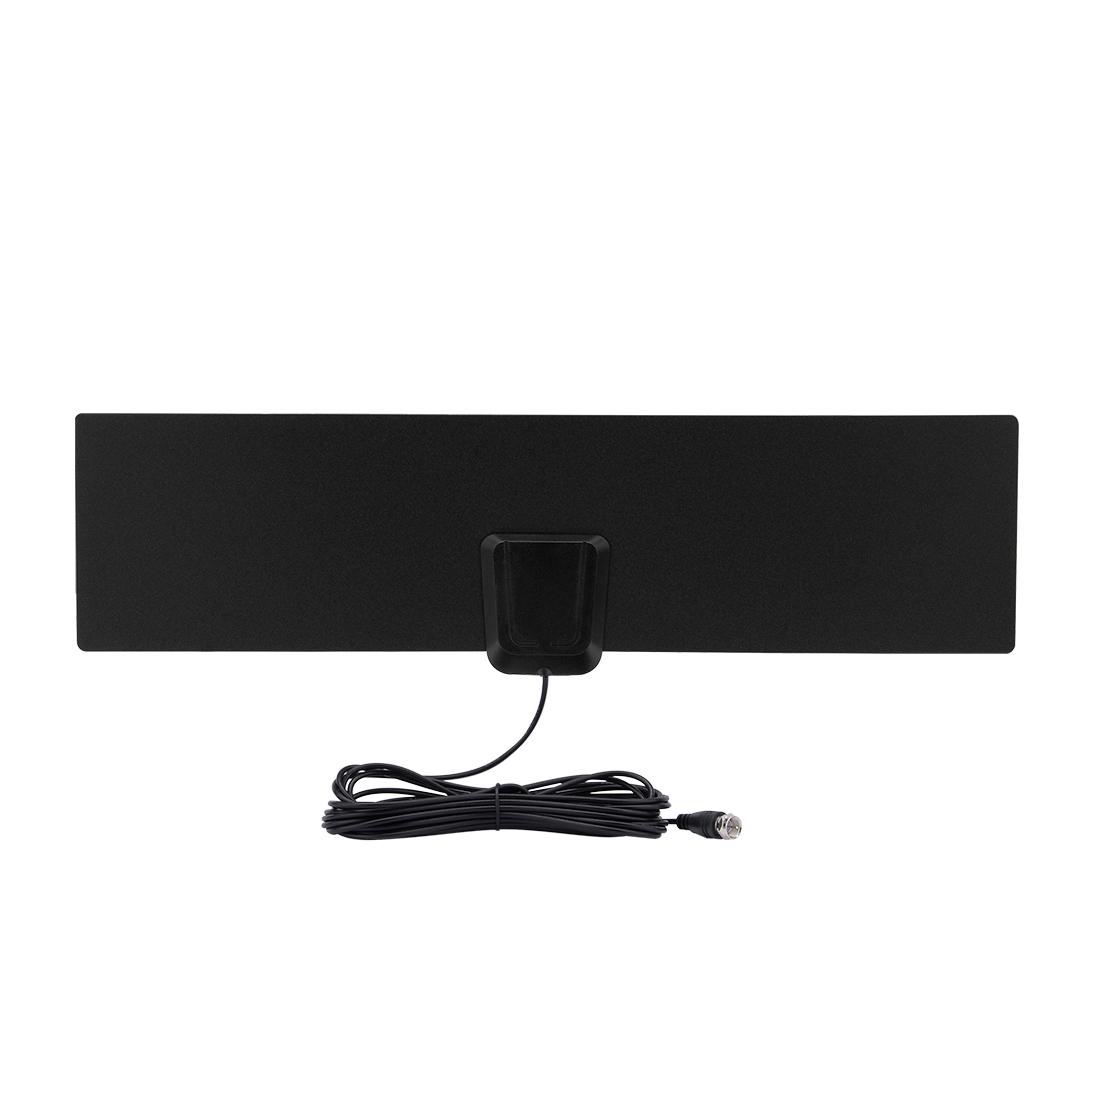 25 Miles Indoor HDTV Antenna Ultra-Thin Digital Antenna with 16ft High Performance Cable